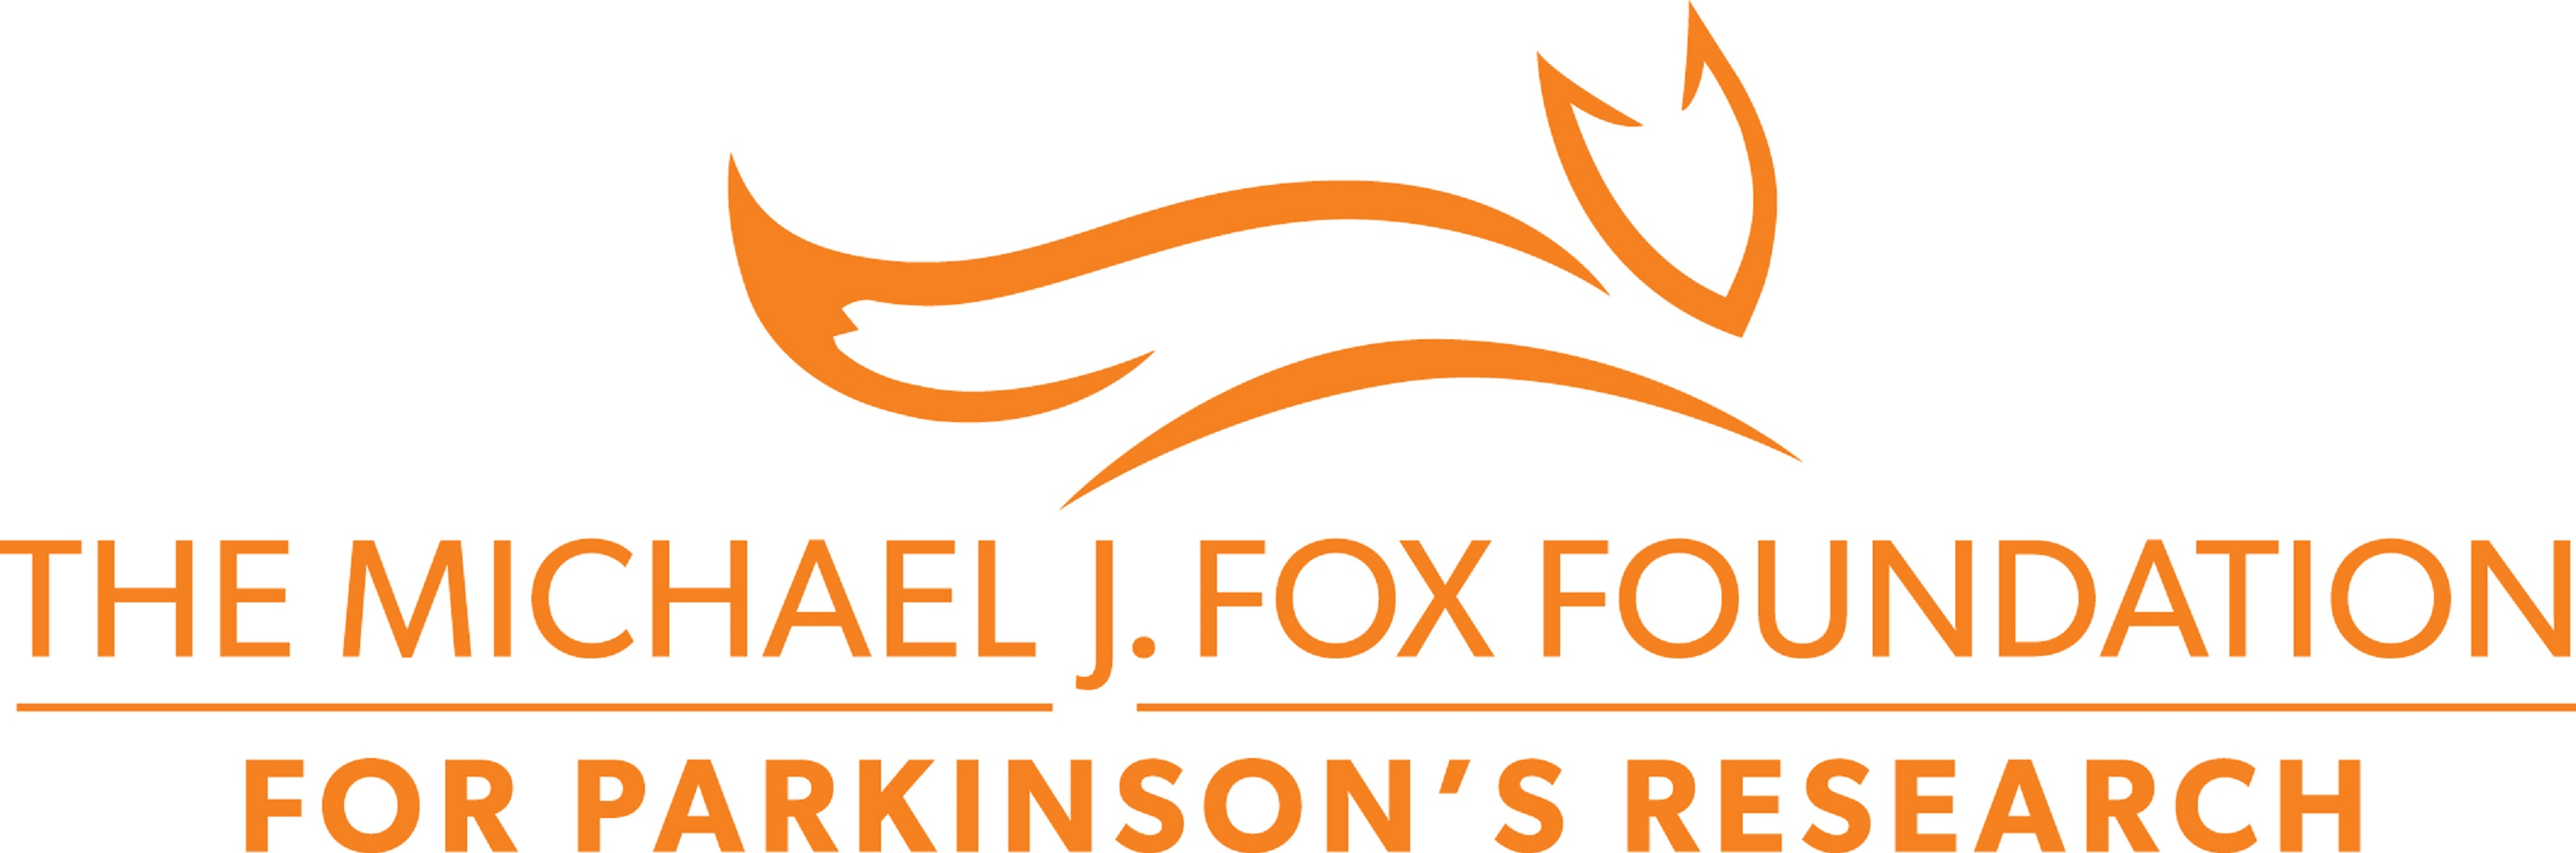 MICHAEL J FOX FOUNDATION FOR PARKINSONS RESEARCH